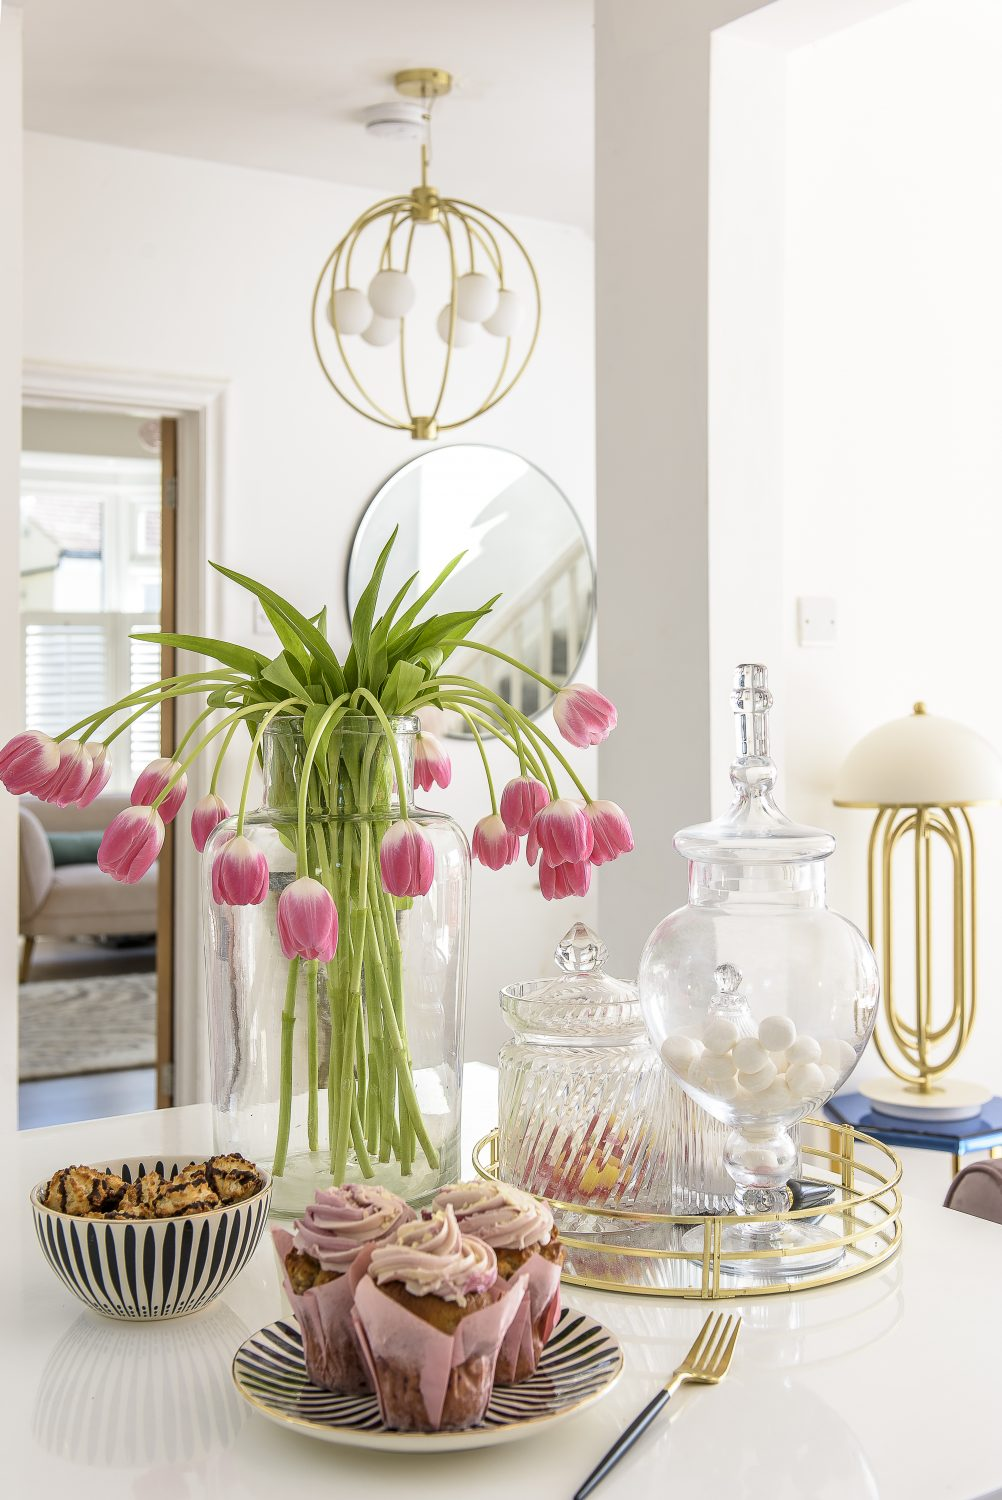 Bonbon jars and gold highlights on the gleaming white kitchen countertop